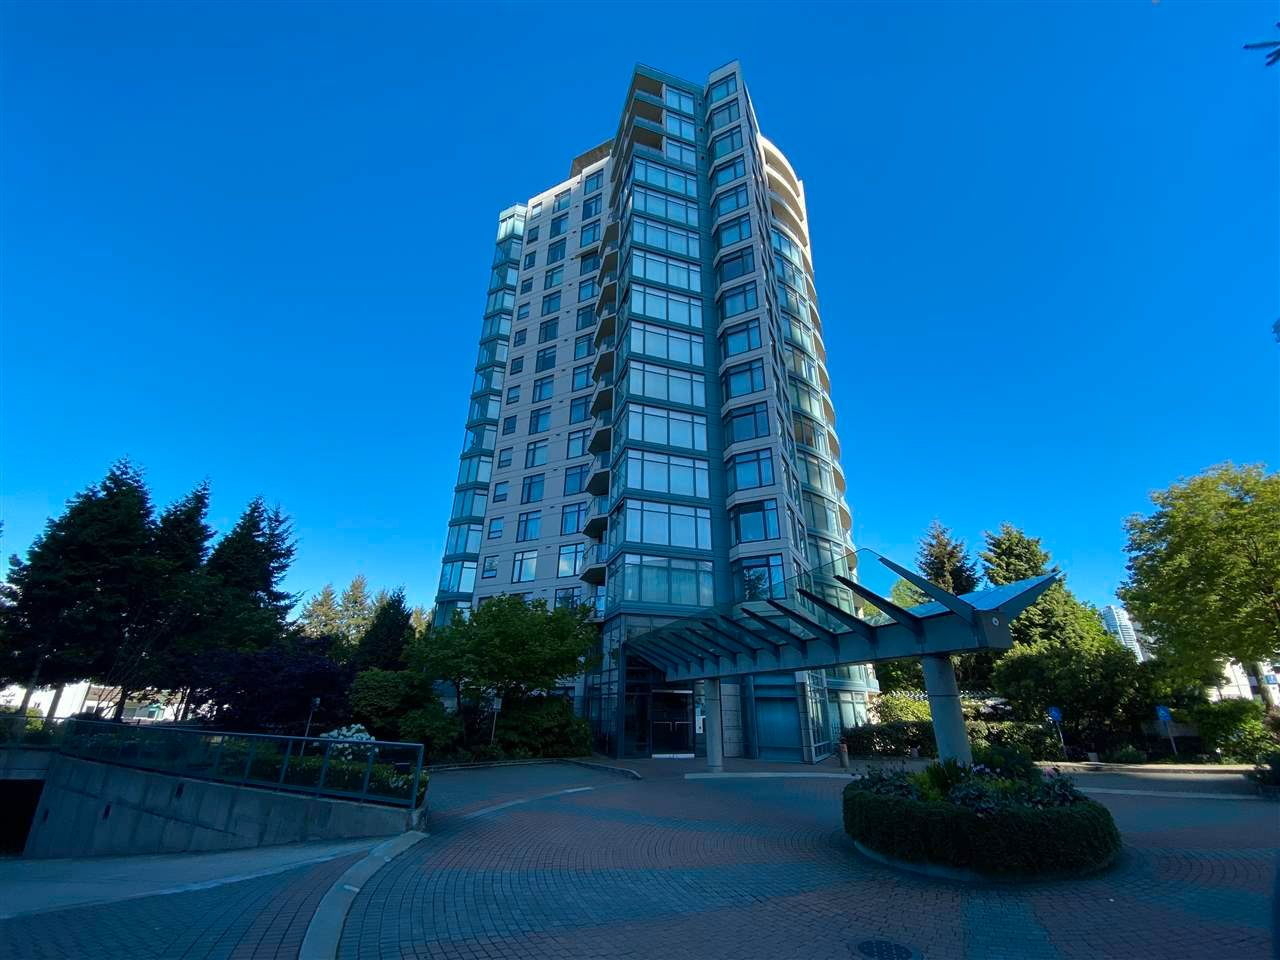 """Main Photo: 1501 4567 HAZEL Street in Burnaby: Forest Glen BS Condo for sale in """"MONARCH"""" (Burnaby South)  : MLS®# R2578419"""